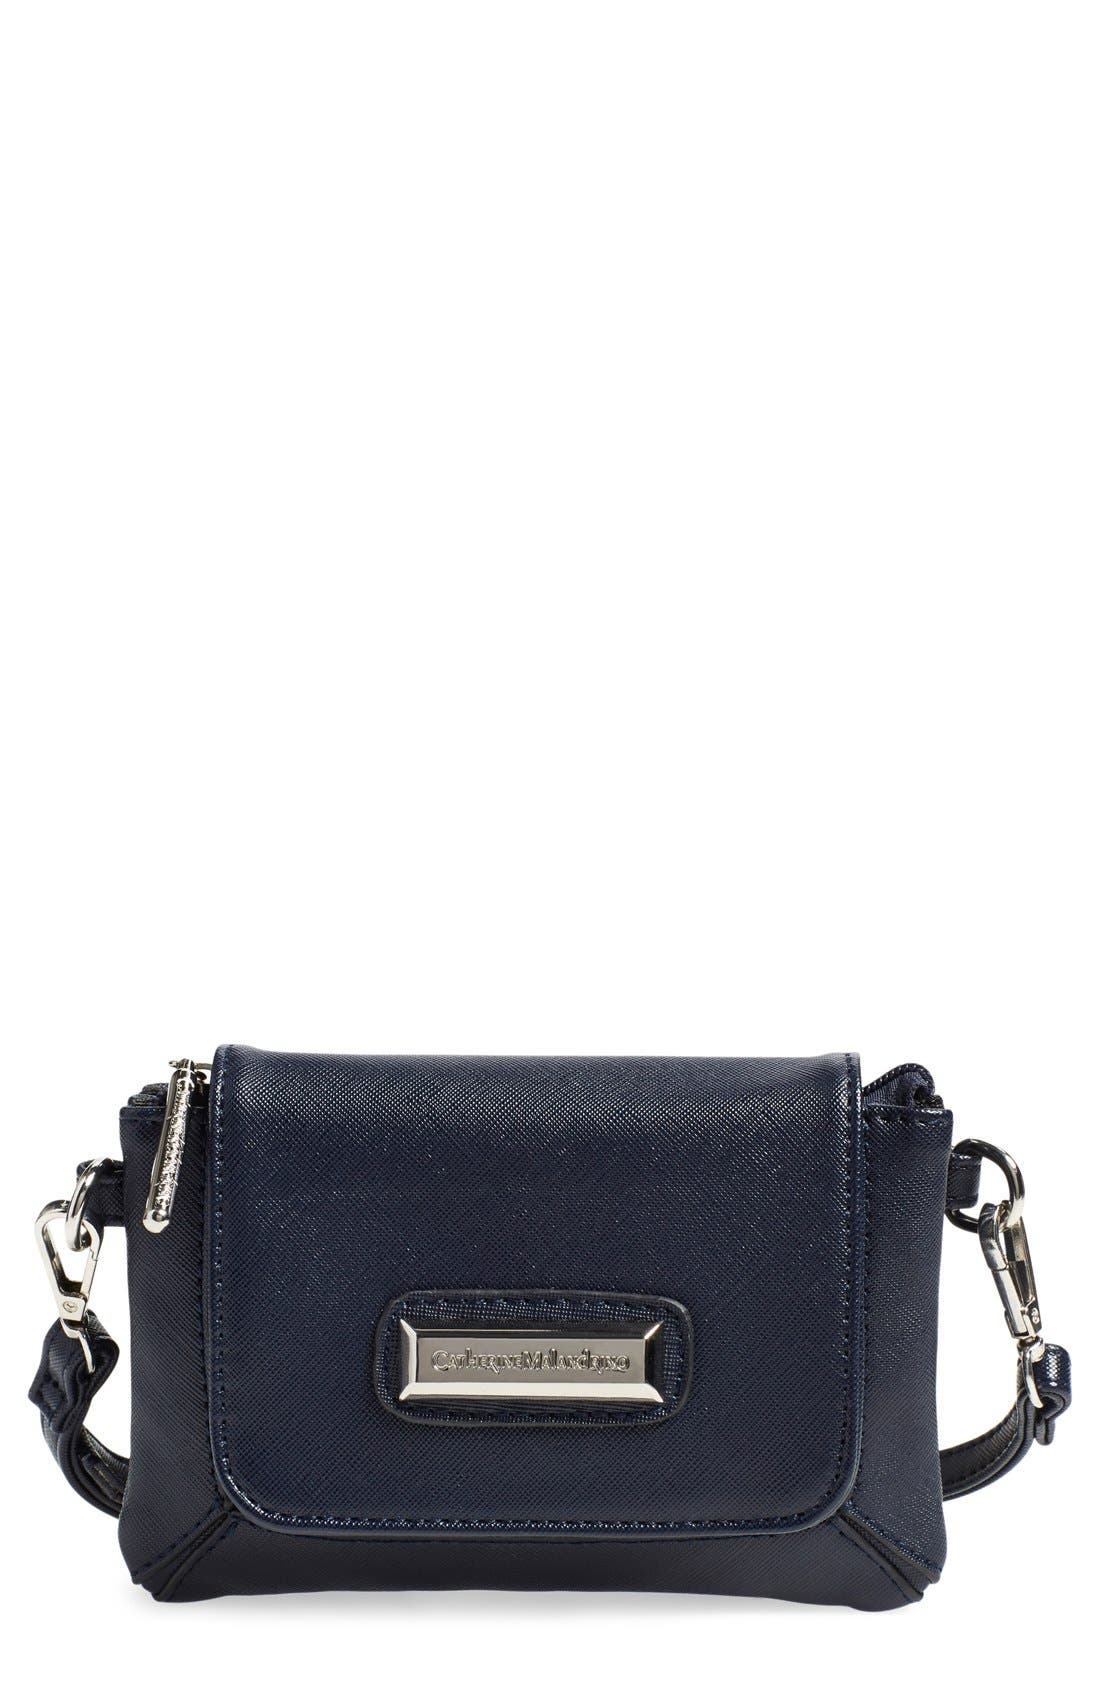 'Mini Clara' Crossbody Bag, Main, color, 020